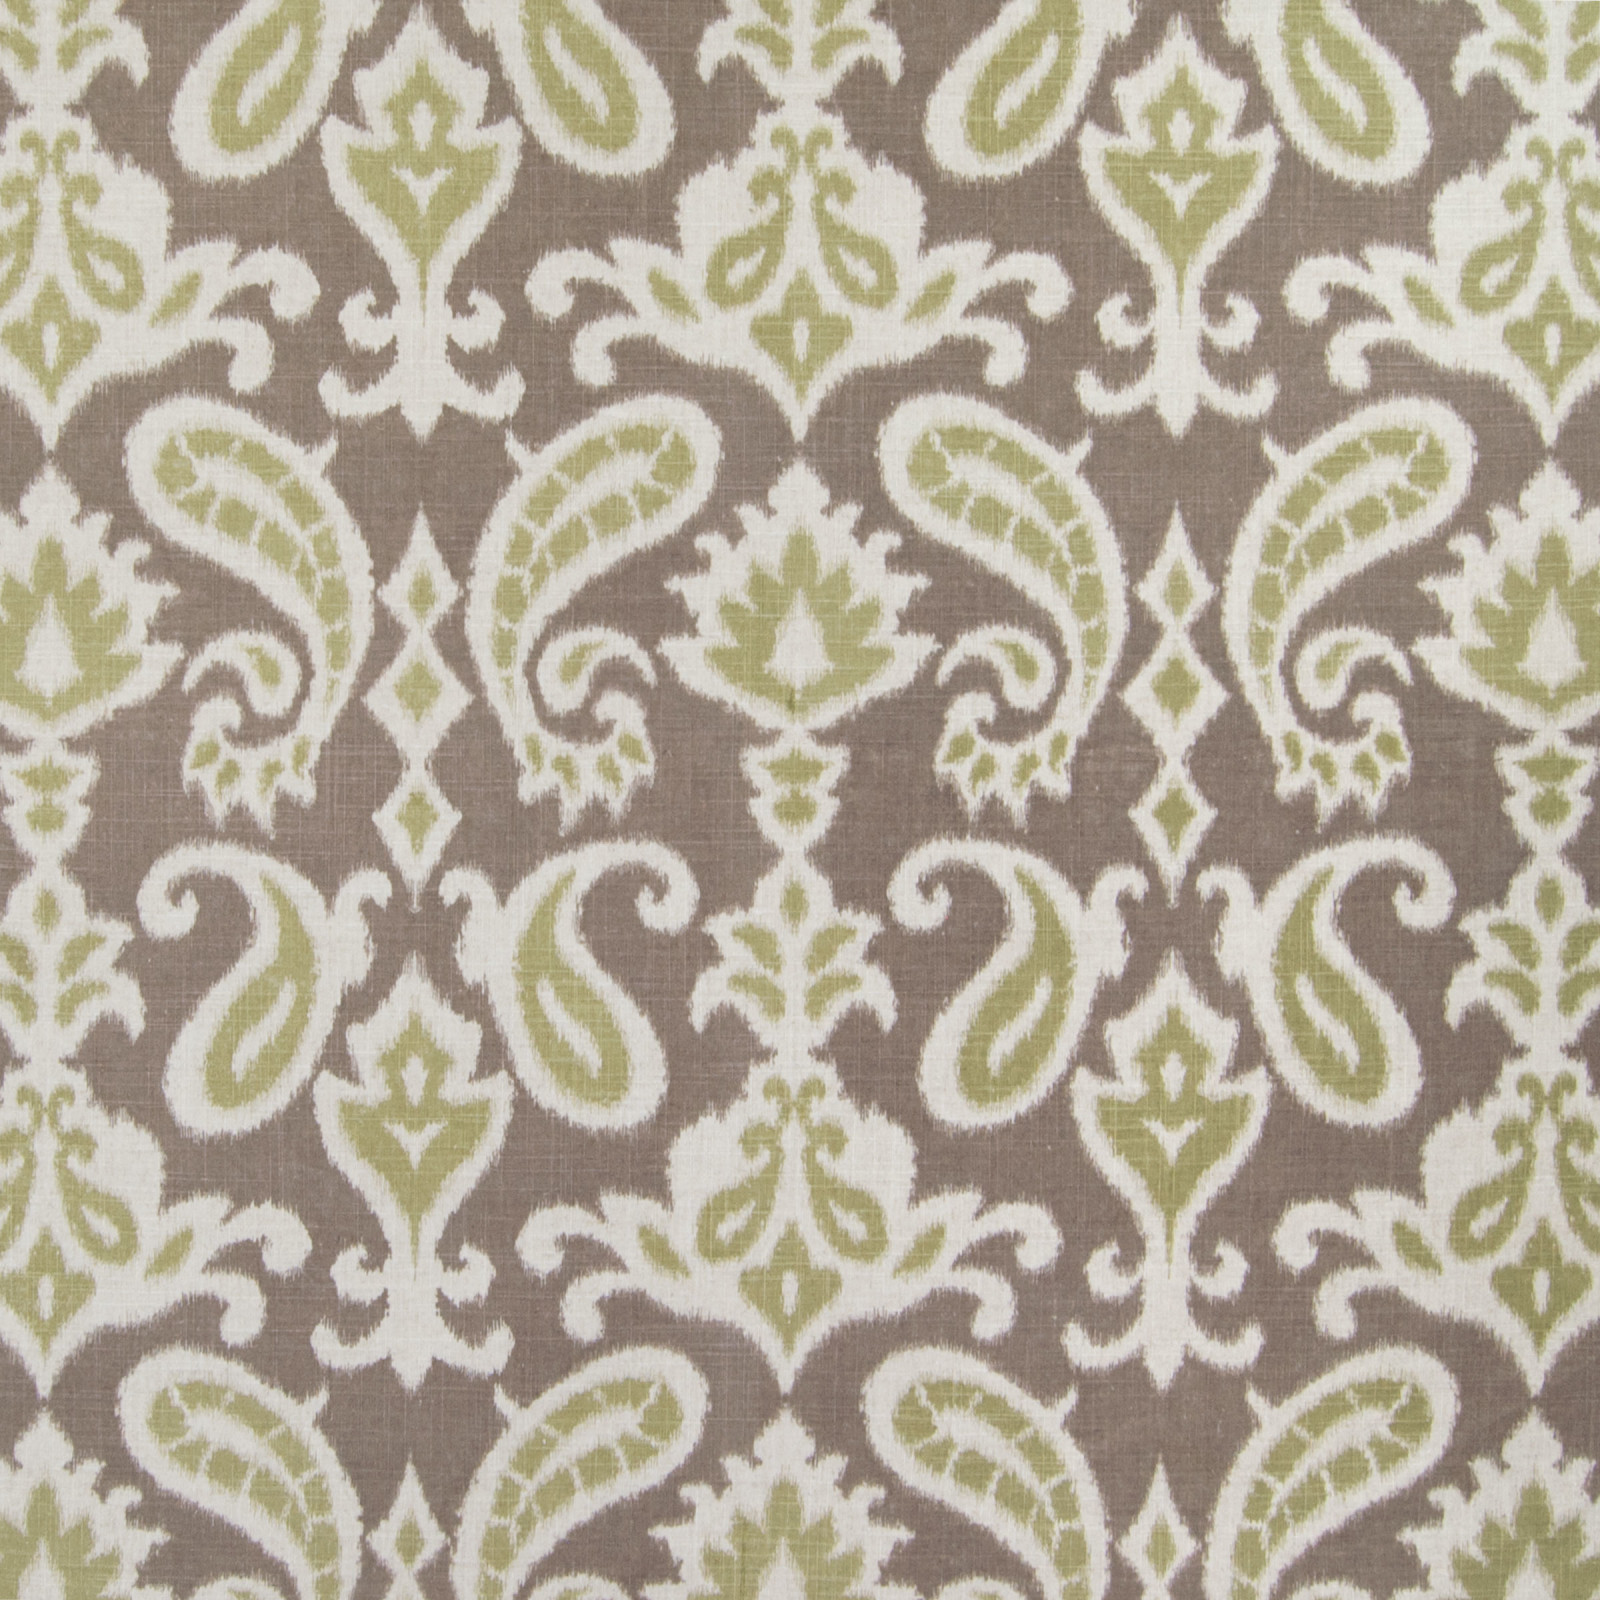 Taupe Green And Brown Ikat Jacquard Upholstery Fabric